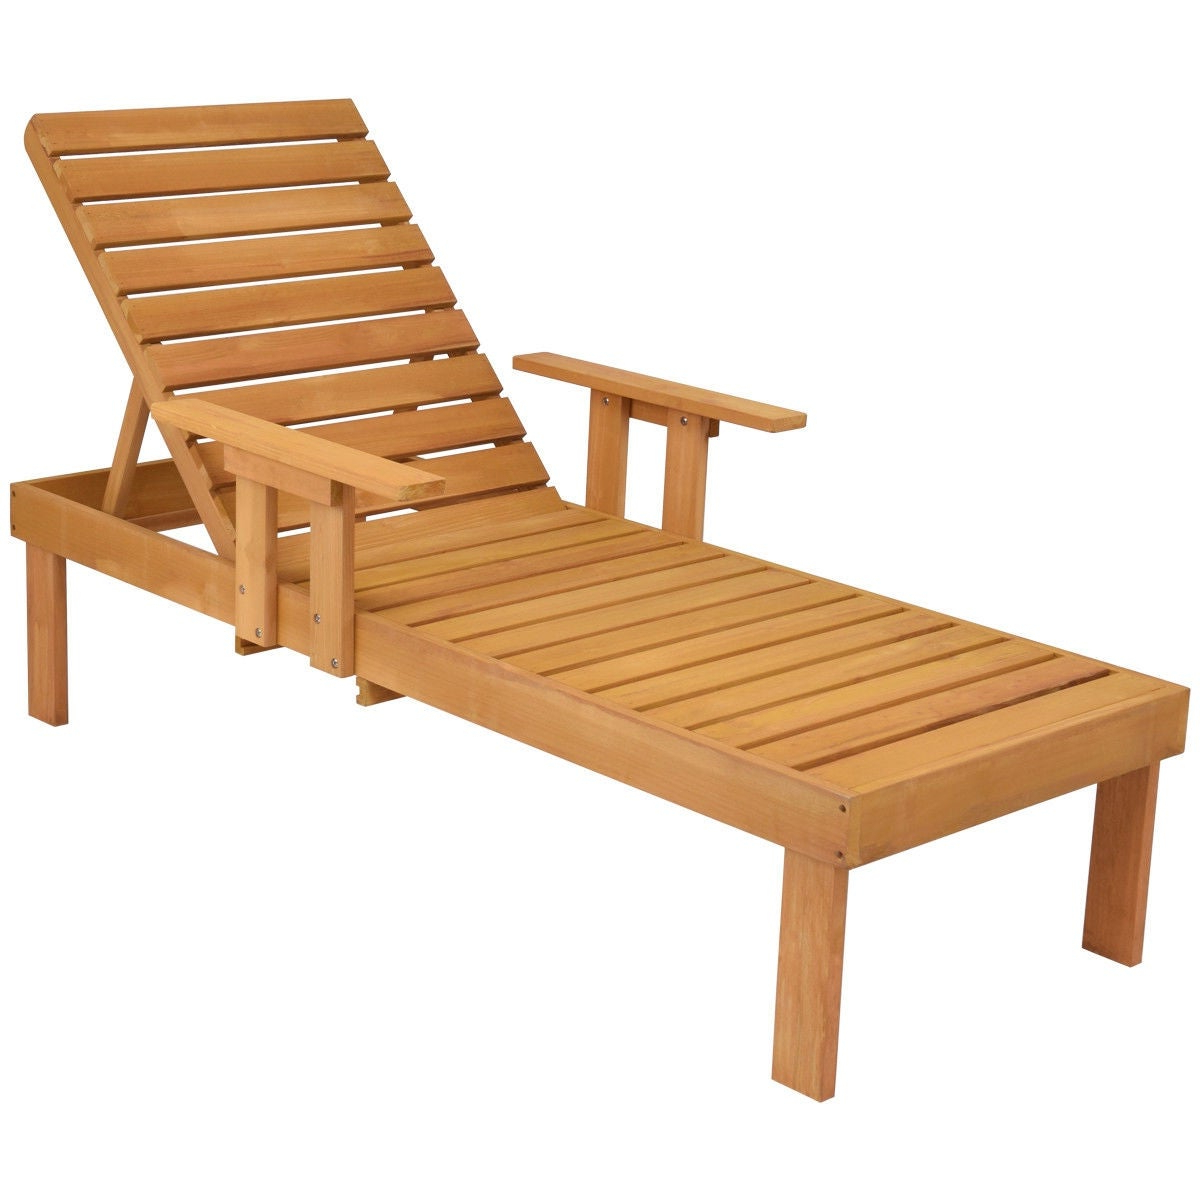 Famous Gymax Patio Chaise Wood Sun Lounger Bench Side Tray Side Beach Table Set – As Pic Inside Havenside Home Ormond Outdoor Hardwood Sun Loungers With Tray (View 24 of 25)